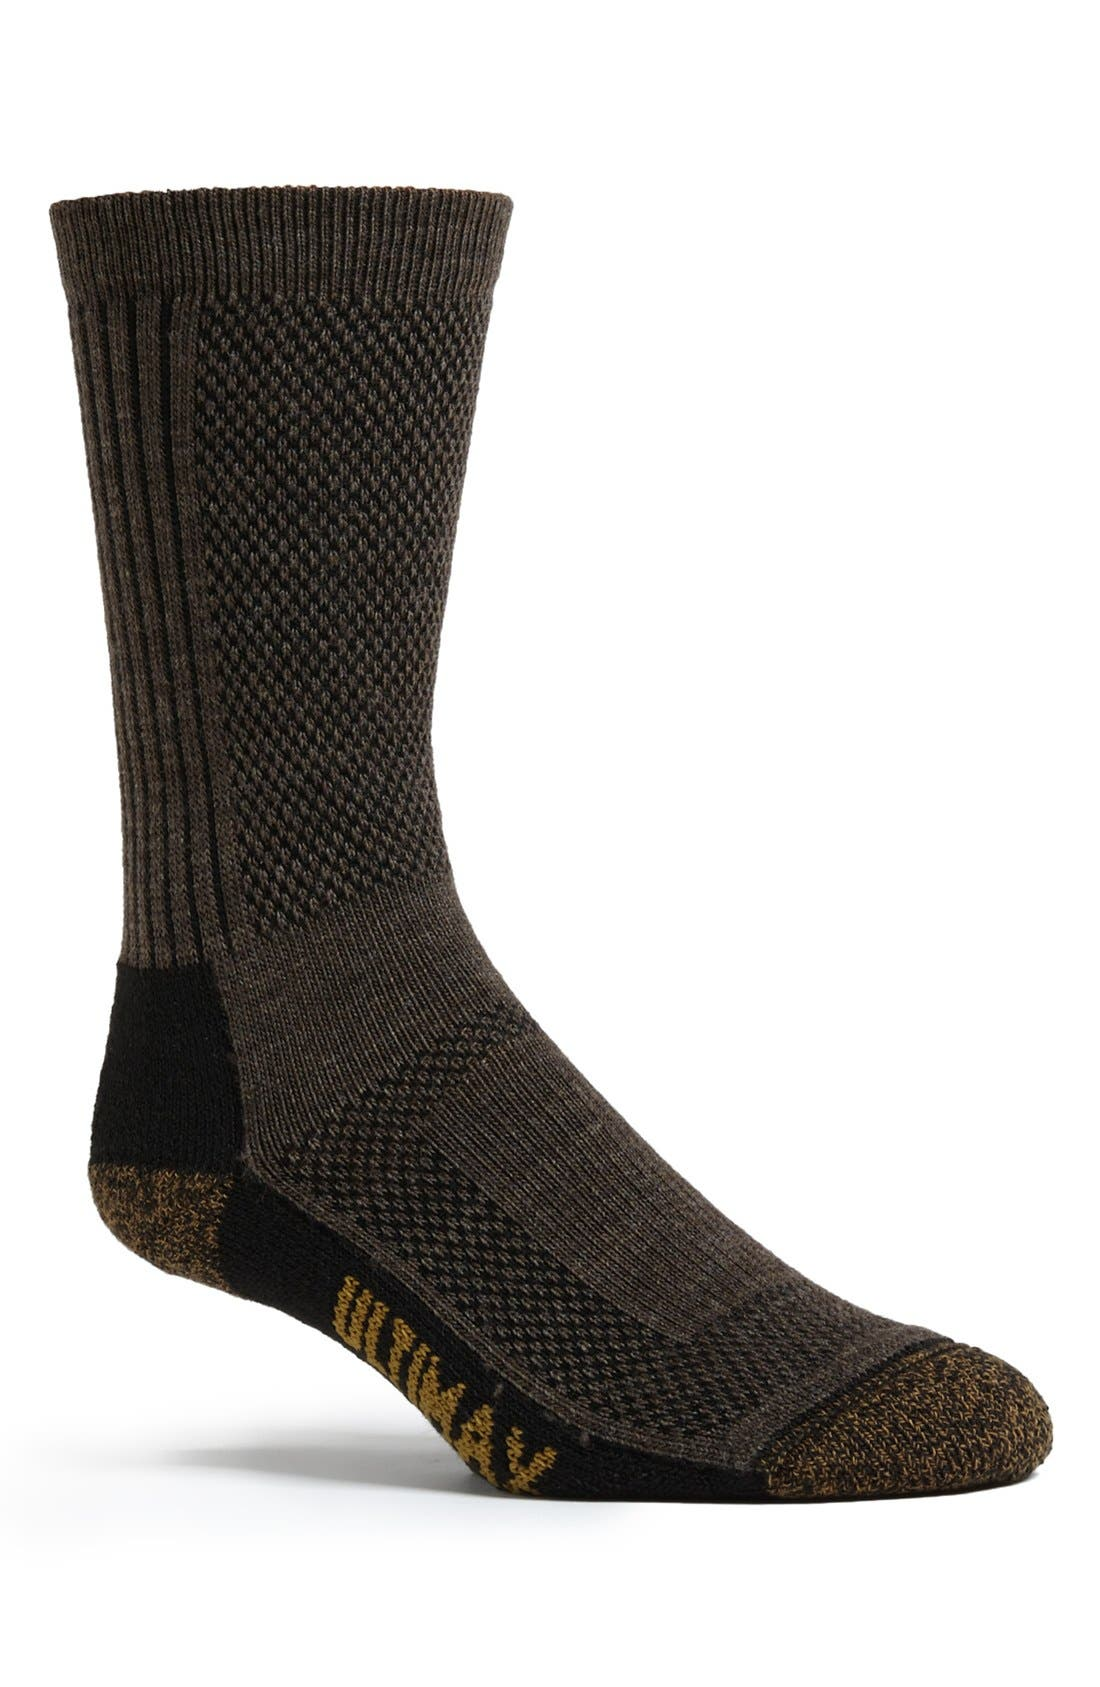 Alternate Image 1 Selected - Wigwam 'Merino Trailblaze Pro' Socks